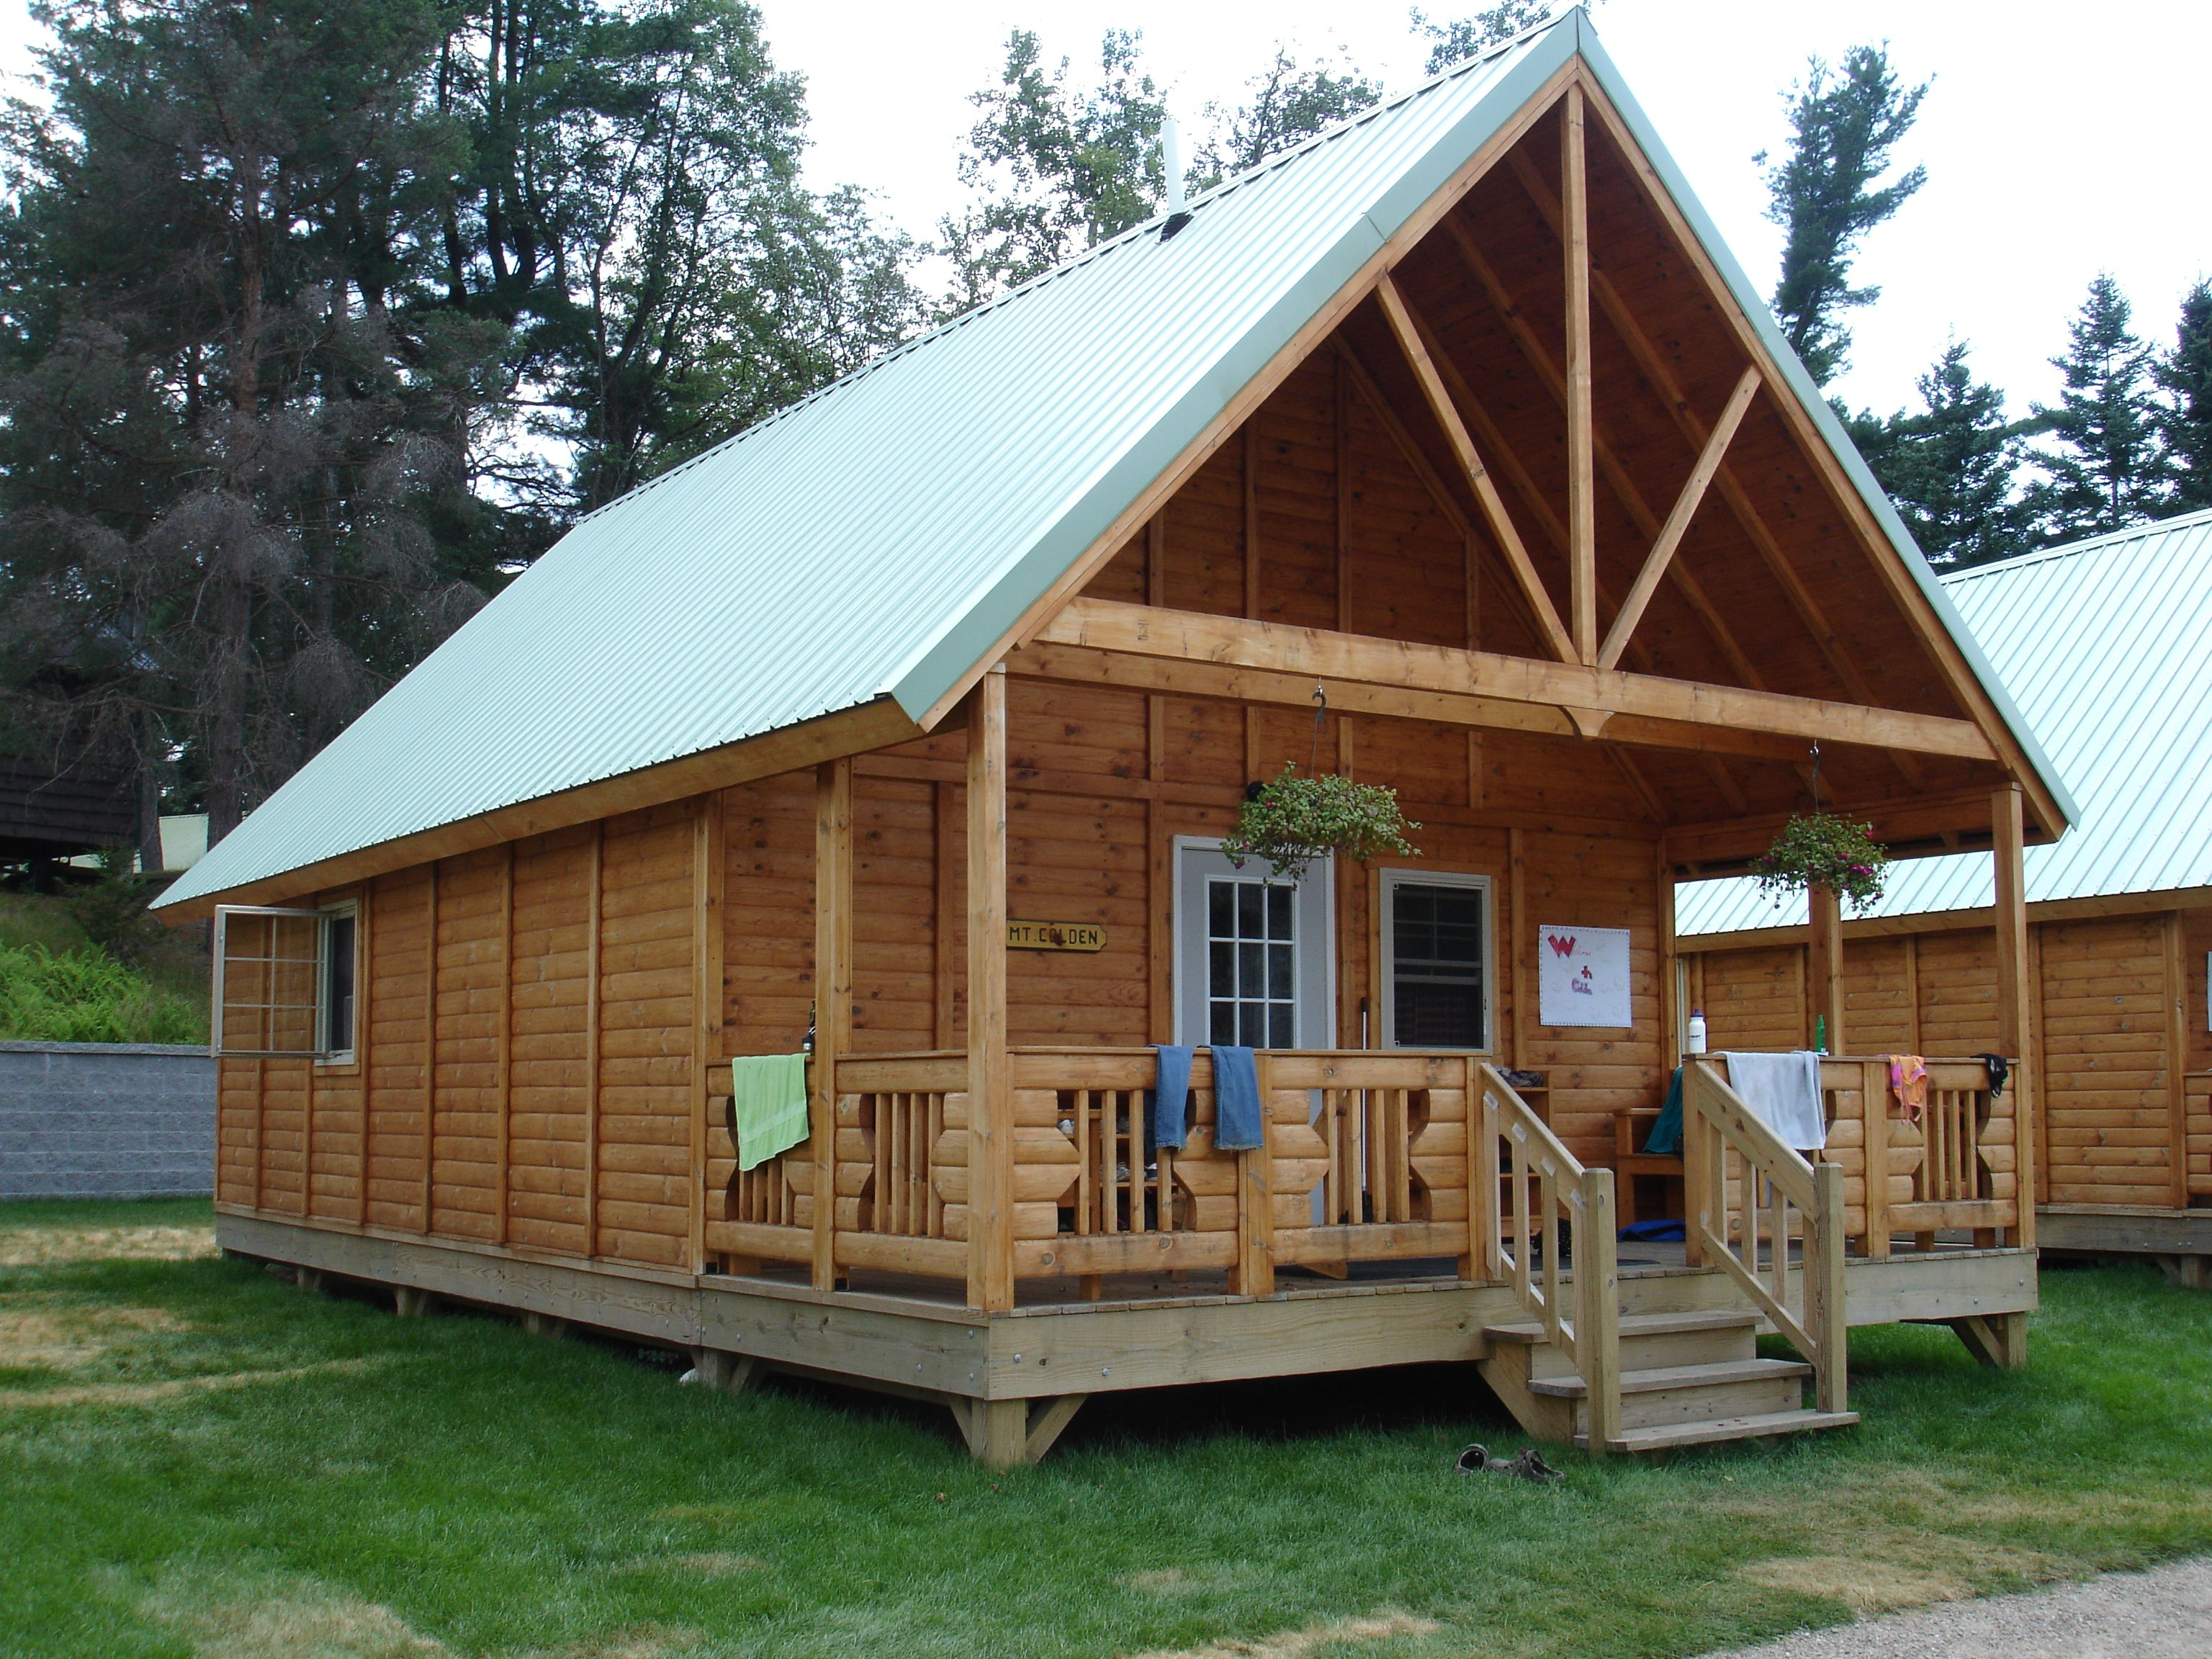 17 Best ideas about Cabin Kits on Pinterest Tiny log cabins Log